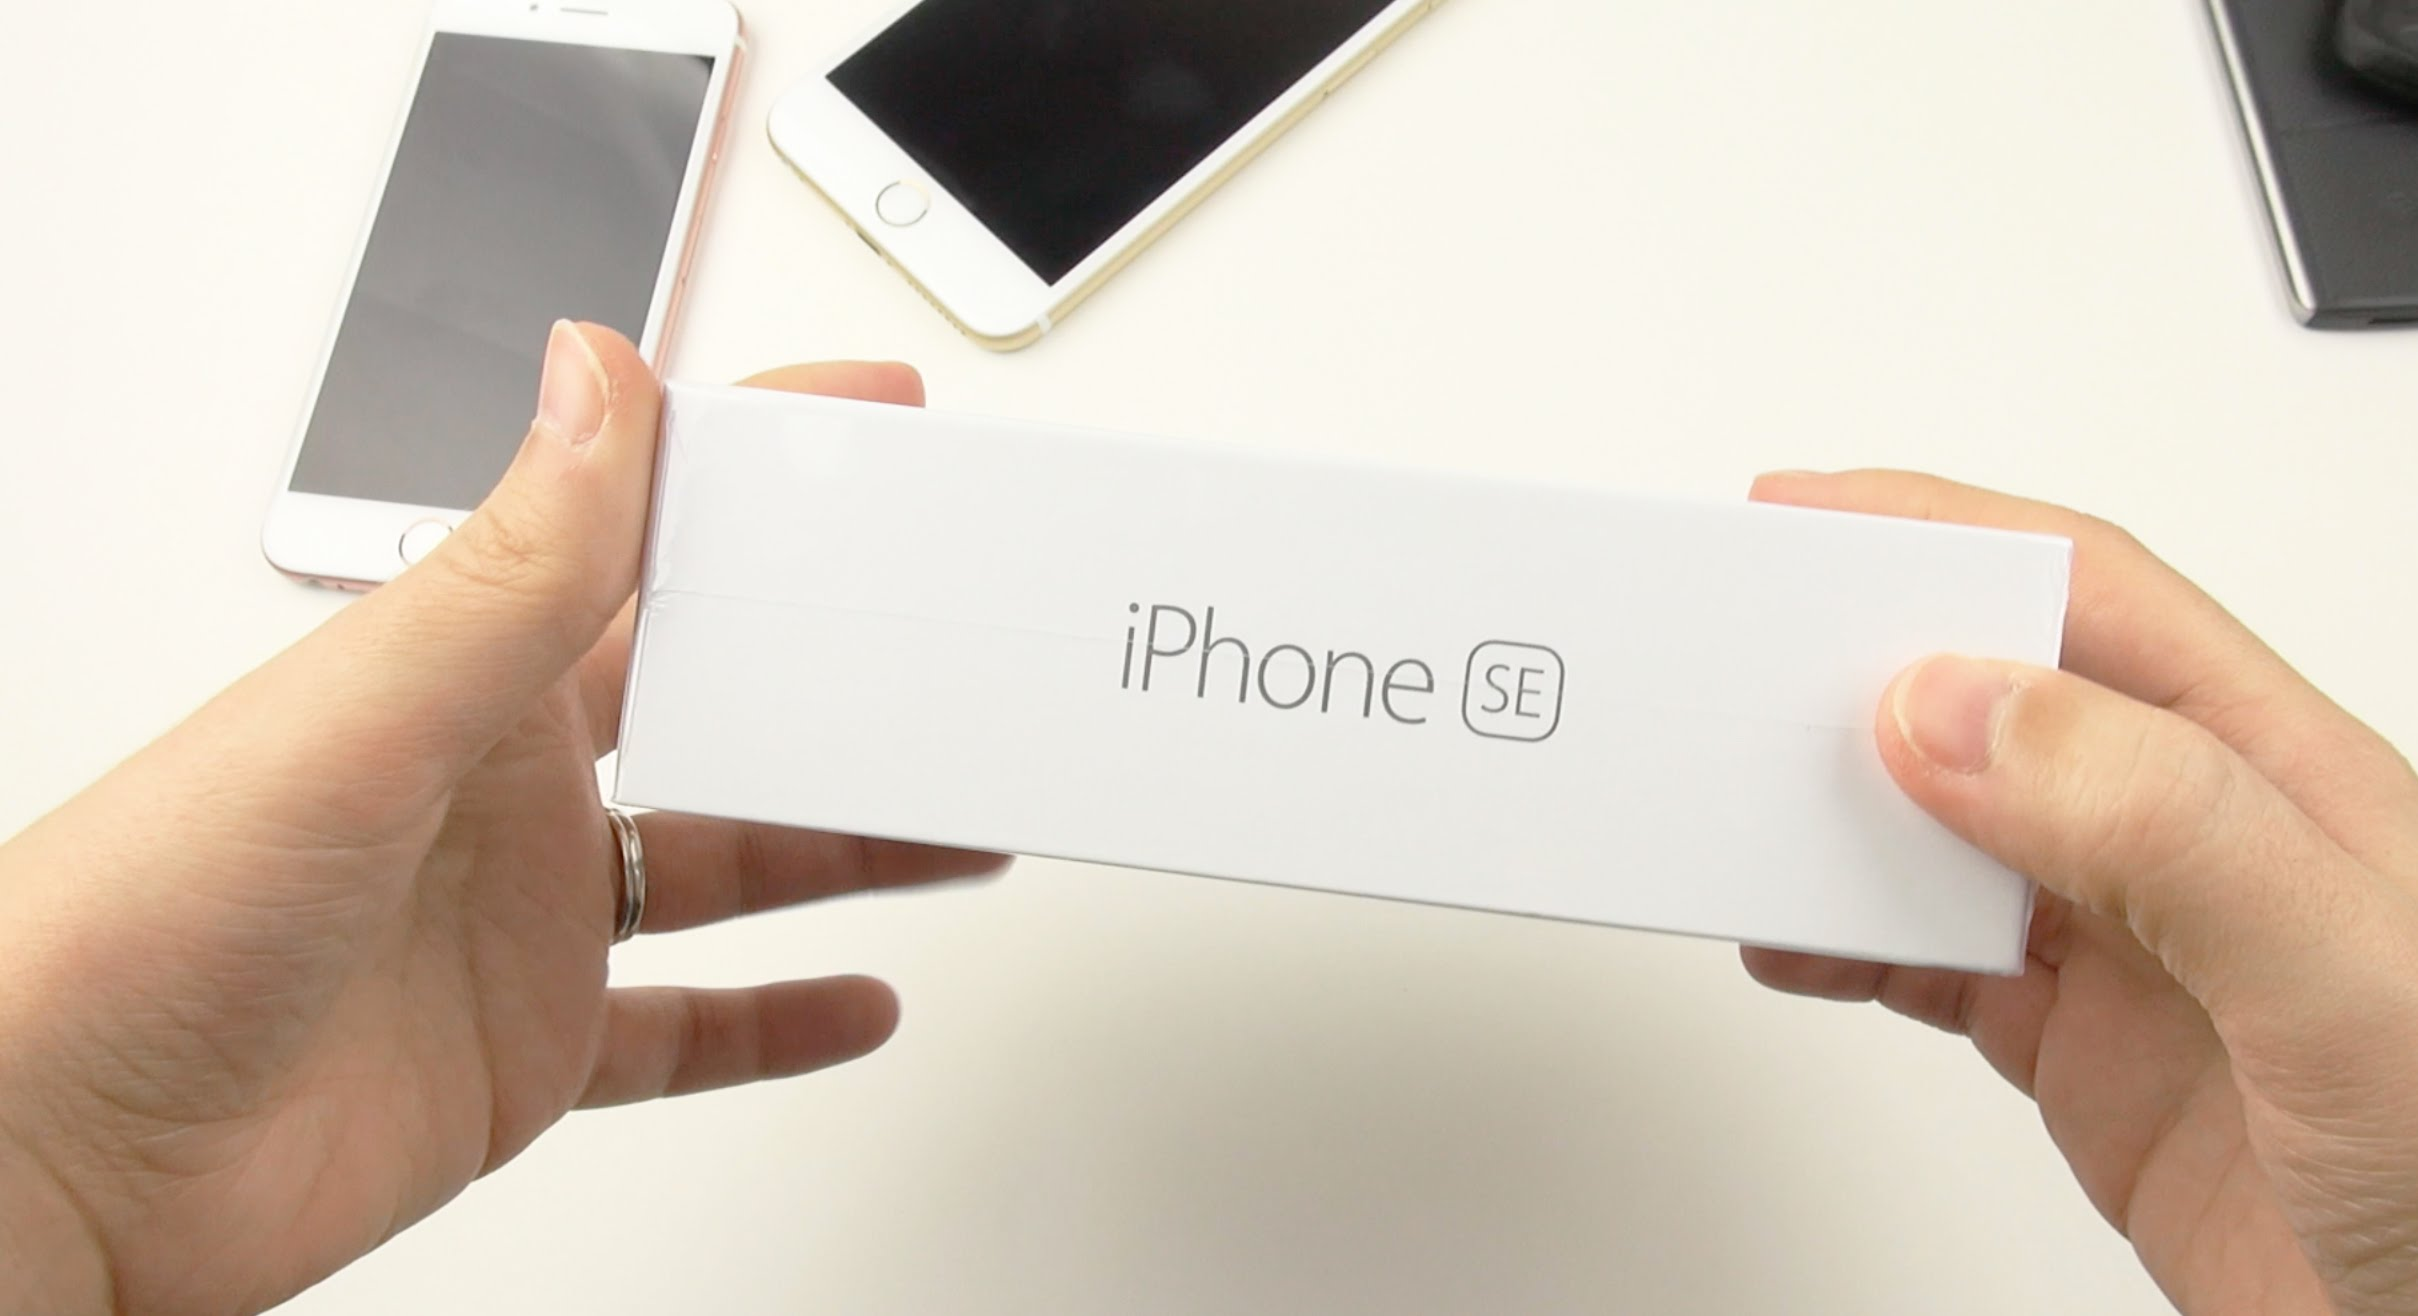 iPhone SE: Unboxing and First Impressions